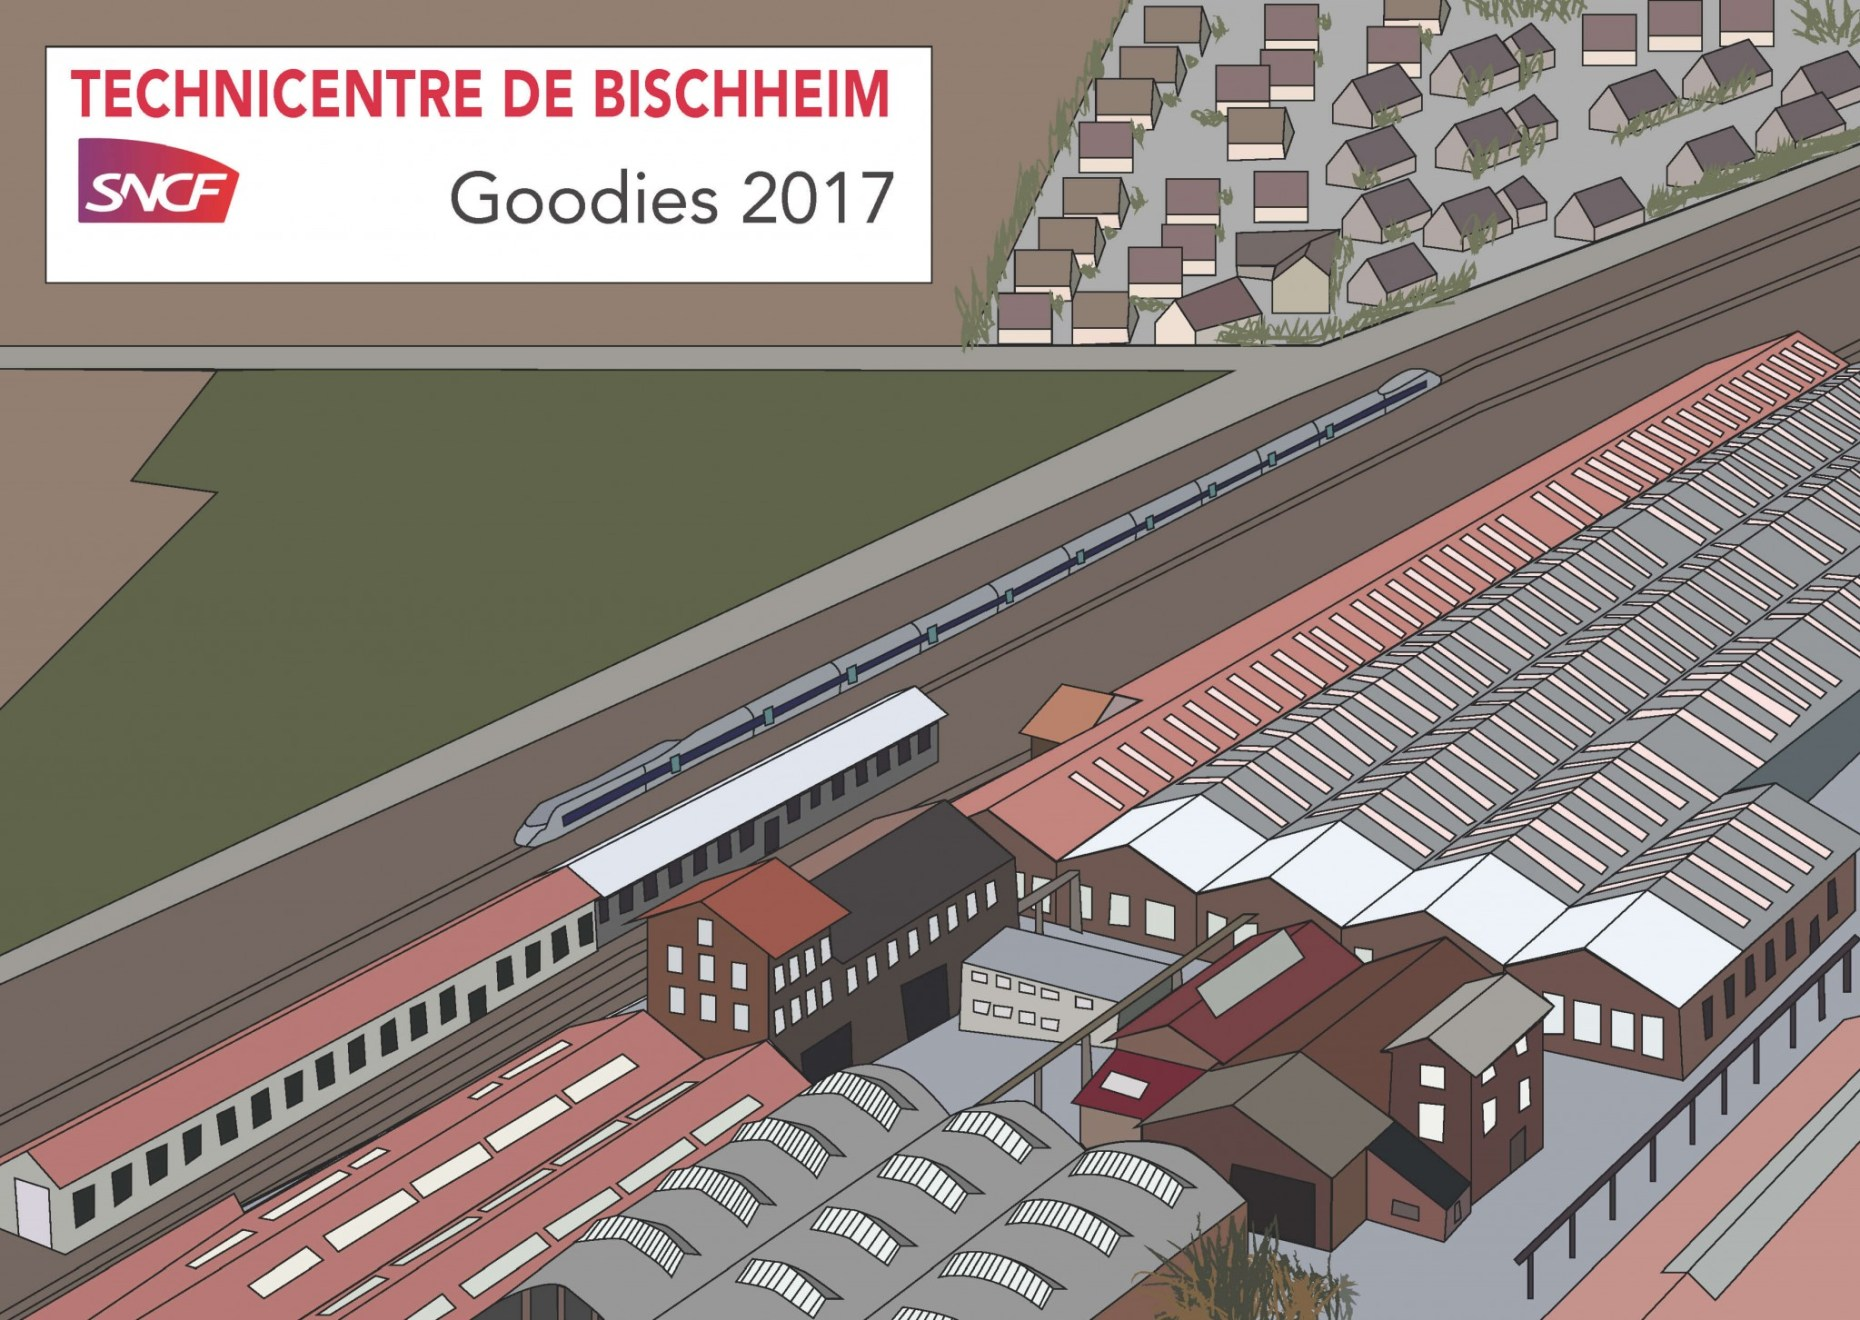 Praktik: SNCF Goodies 2017